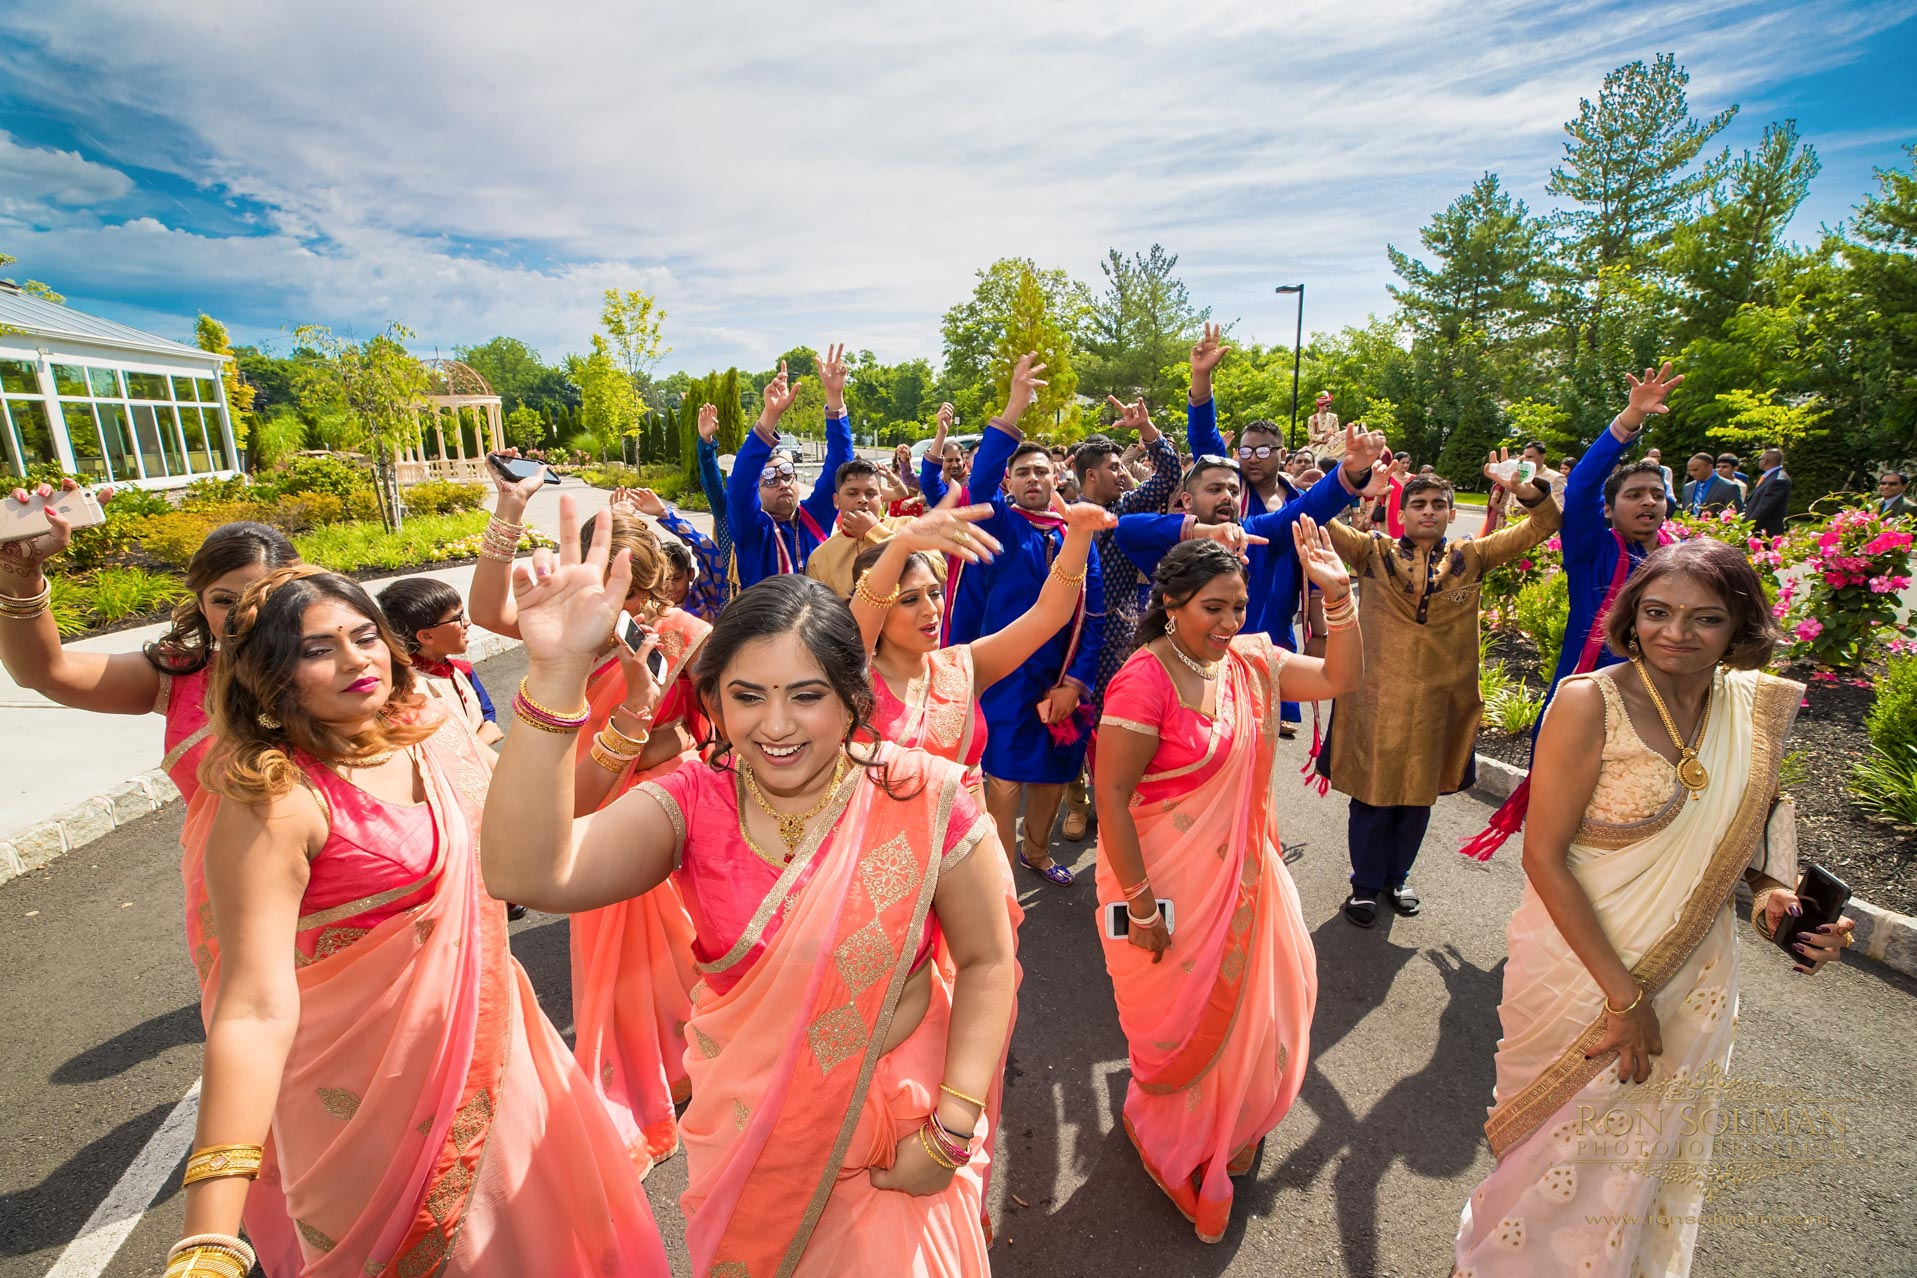 THE MARIGOLD INDIAN WEDDING SOMERSET, NJ